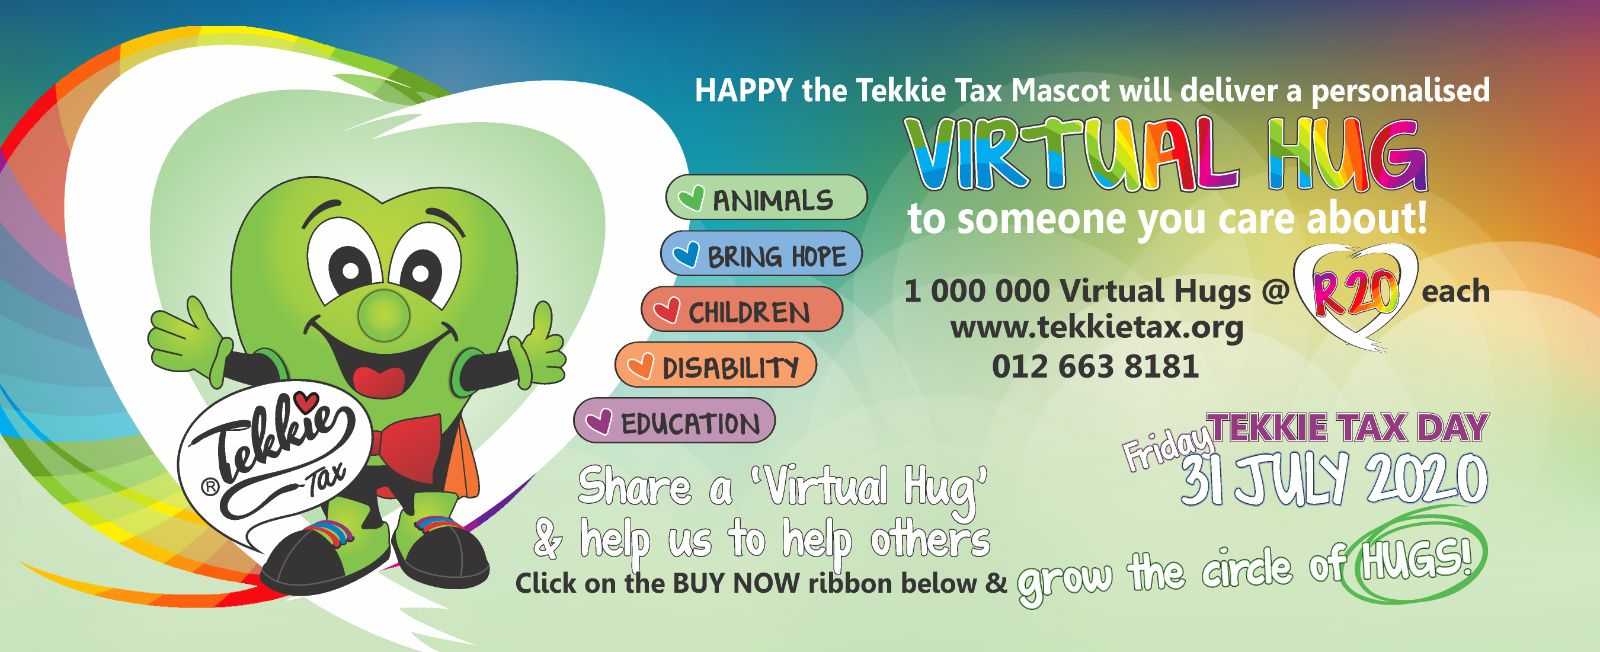 VIRTUAL HUG WEB 2700 X 1100 (1)